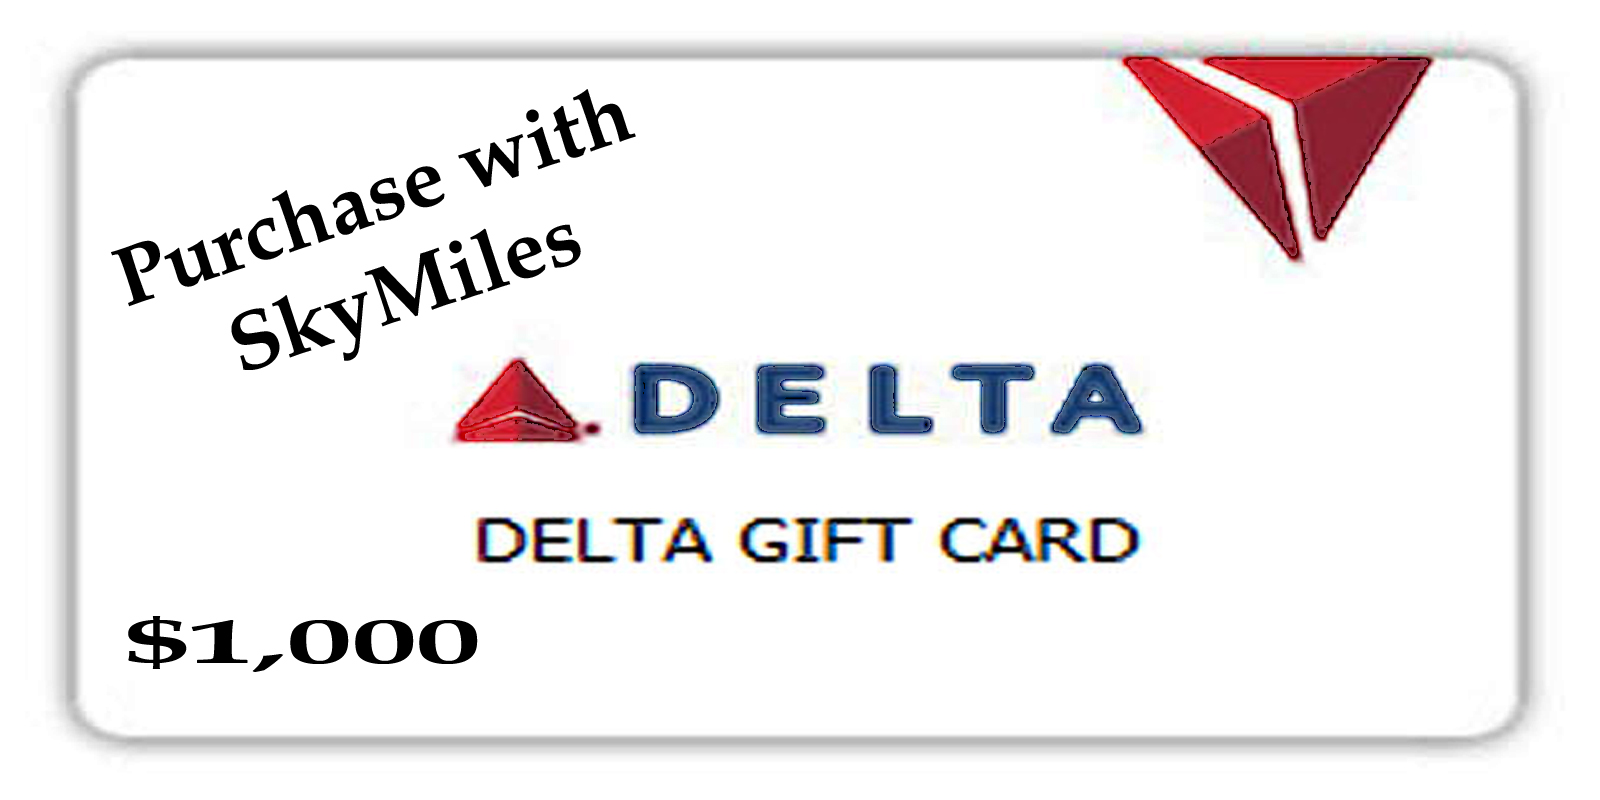 Delta Air Lines Now Allows Purchase Of Gift Card Using Your Skymiles